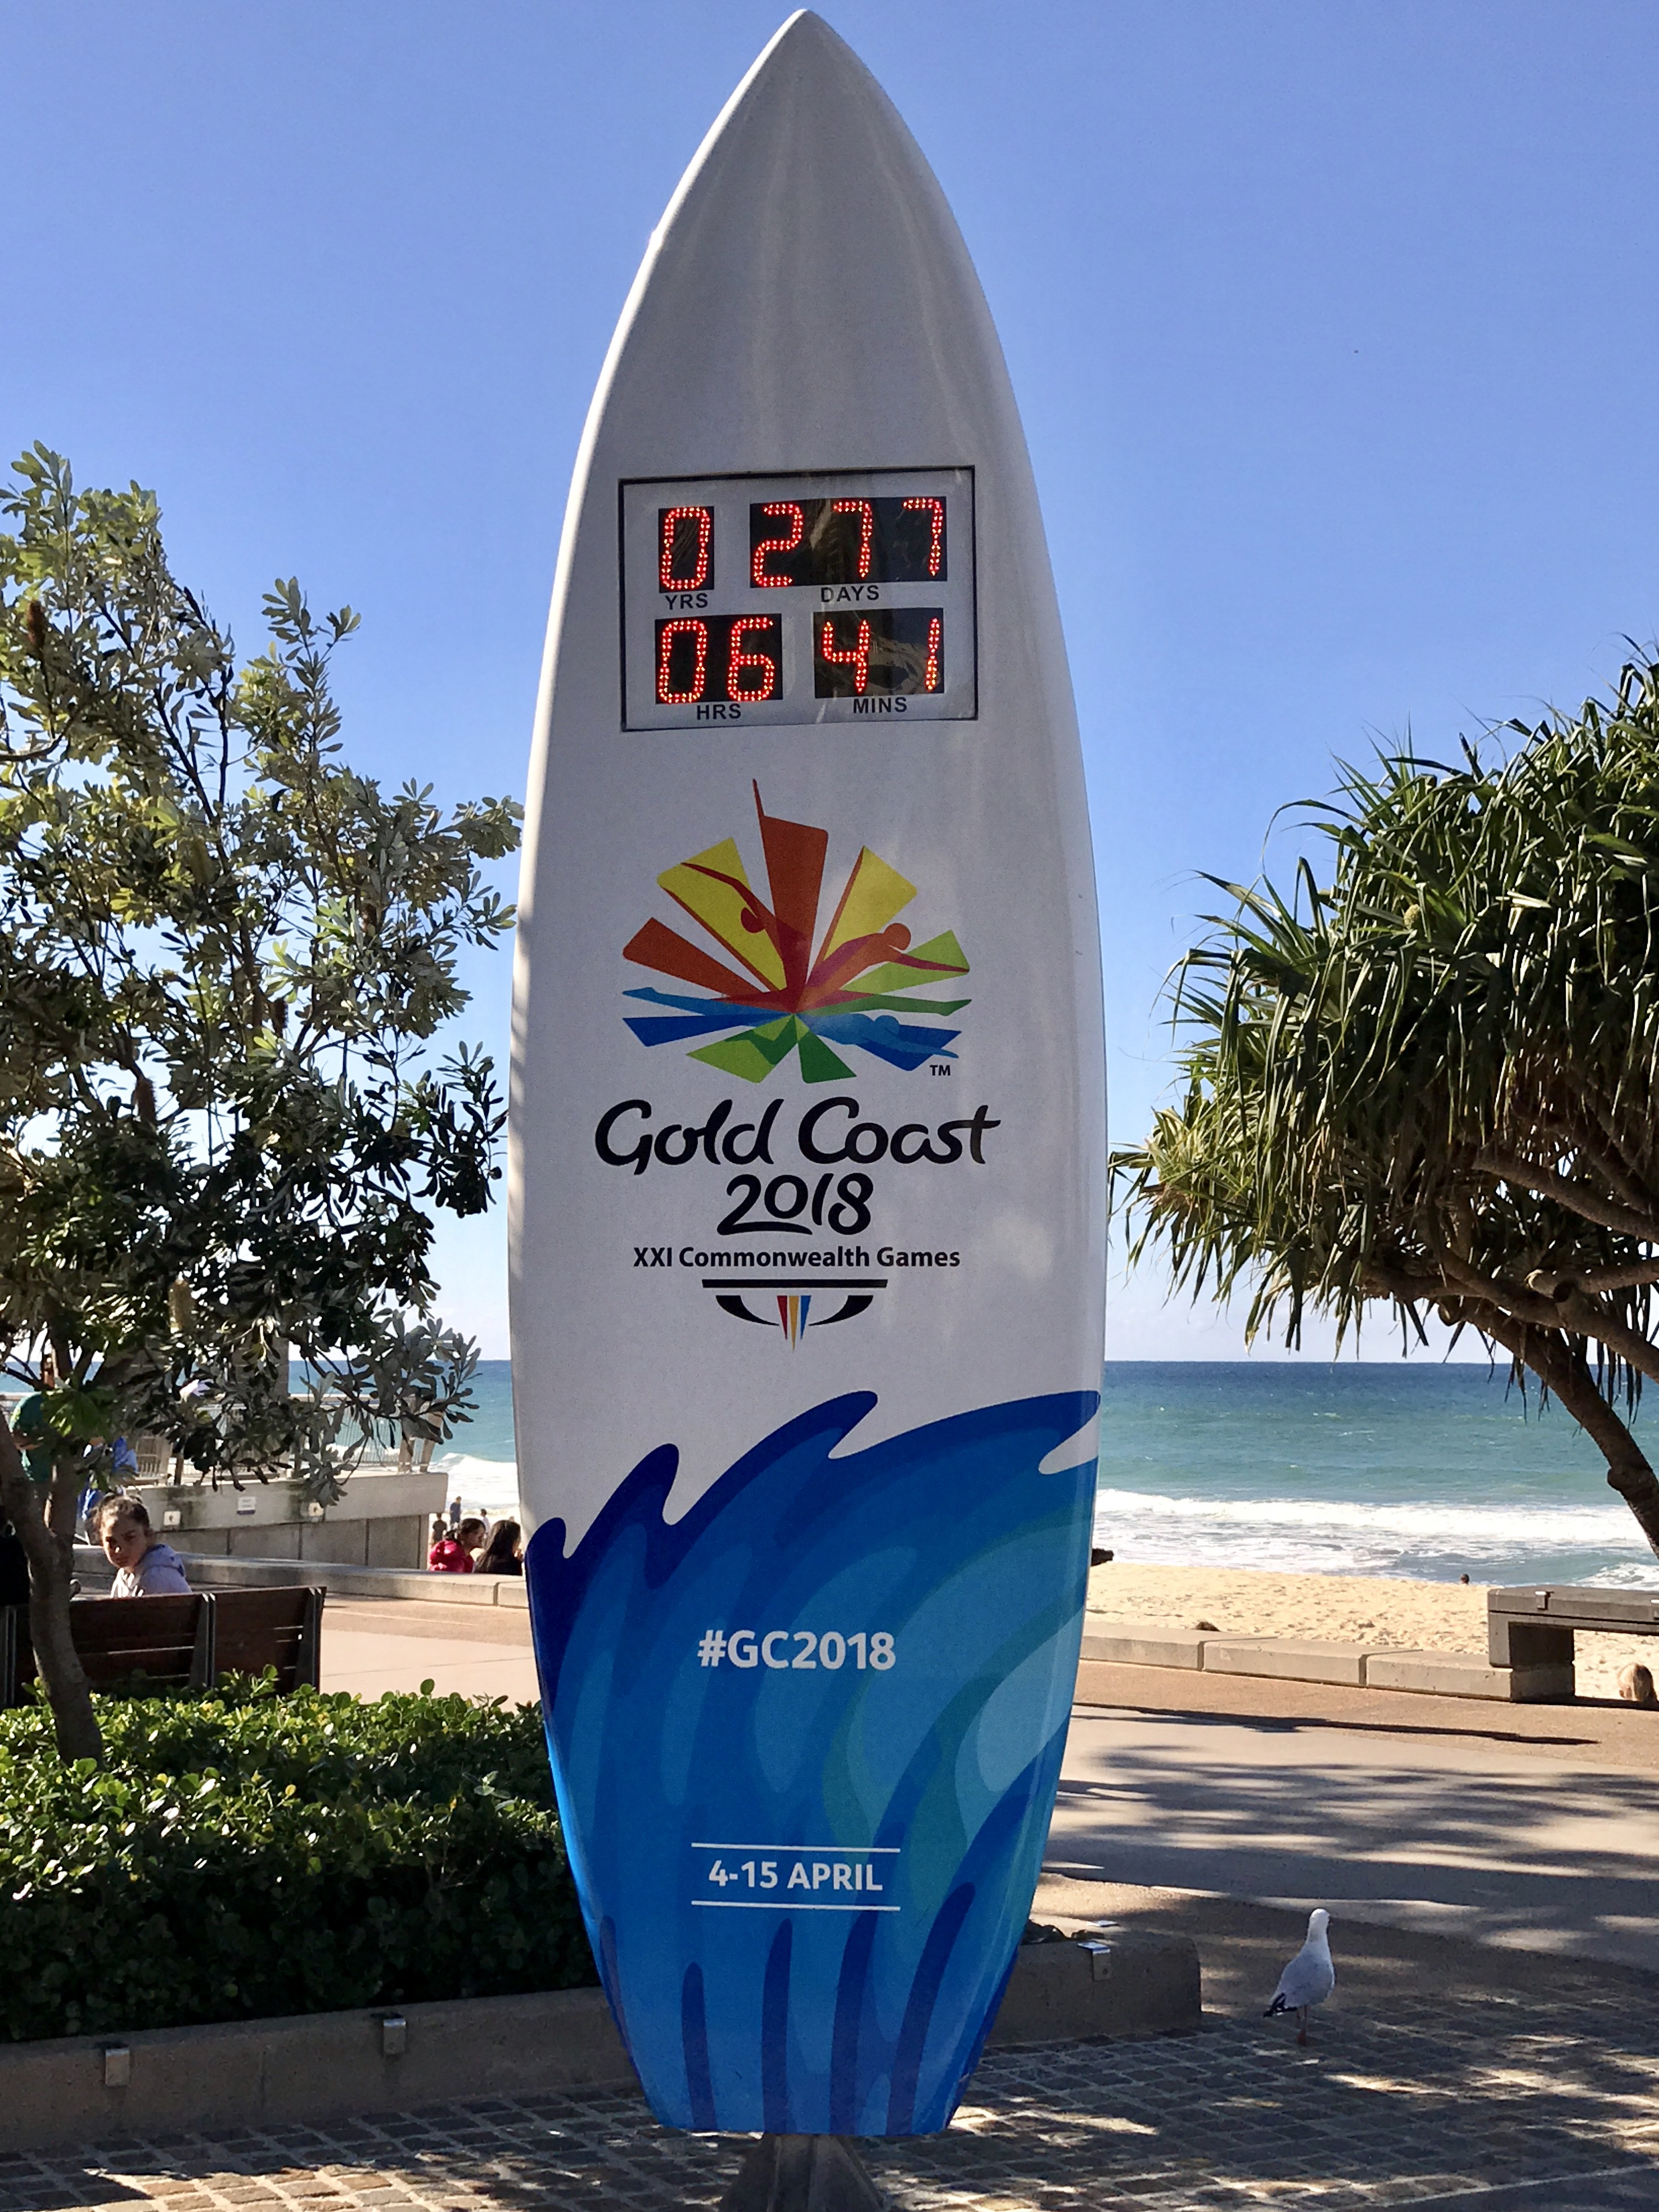 Countdown clock for the 2018 Commonwealth Games, as photographed on July 1, 2017, in Surfers Paradise, Gold Coast, Queensland.